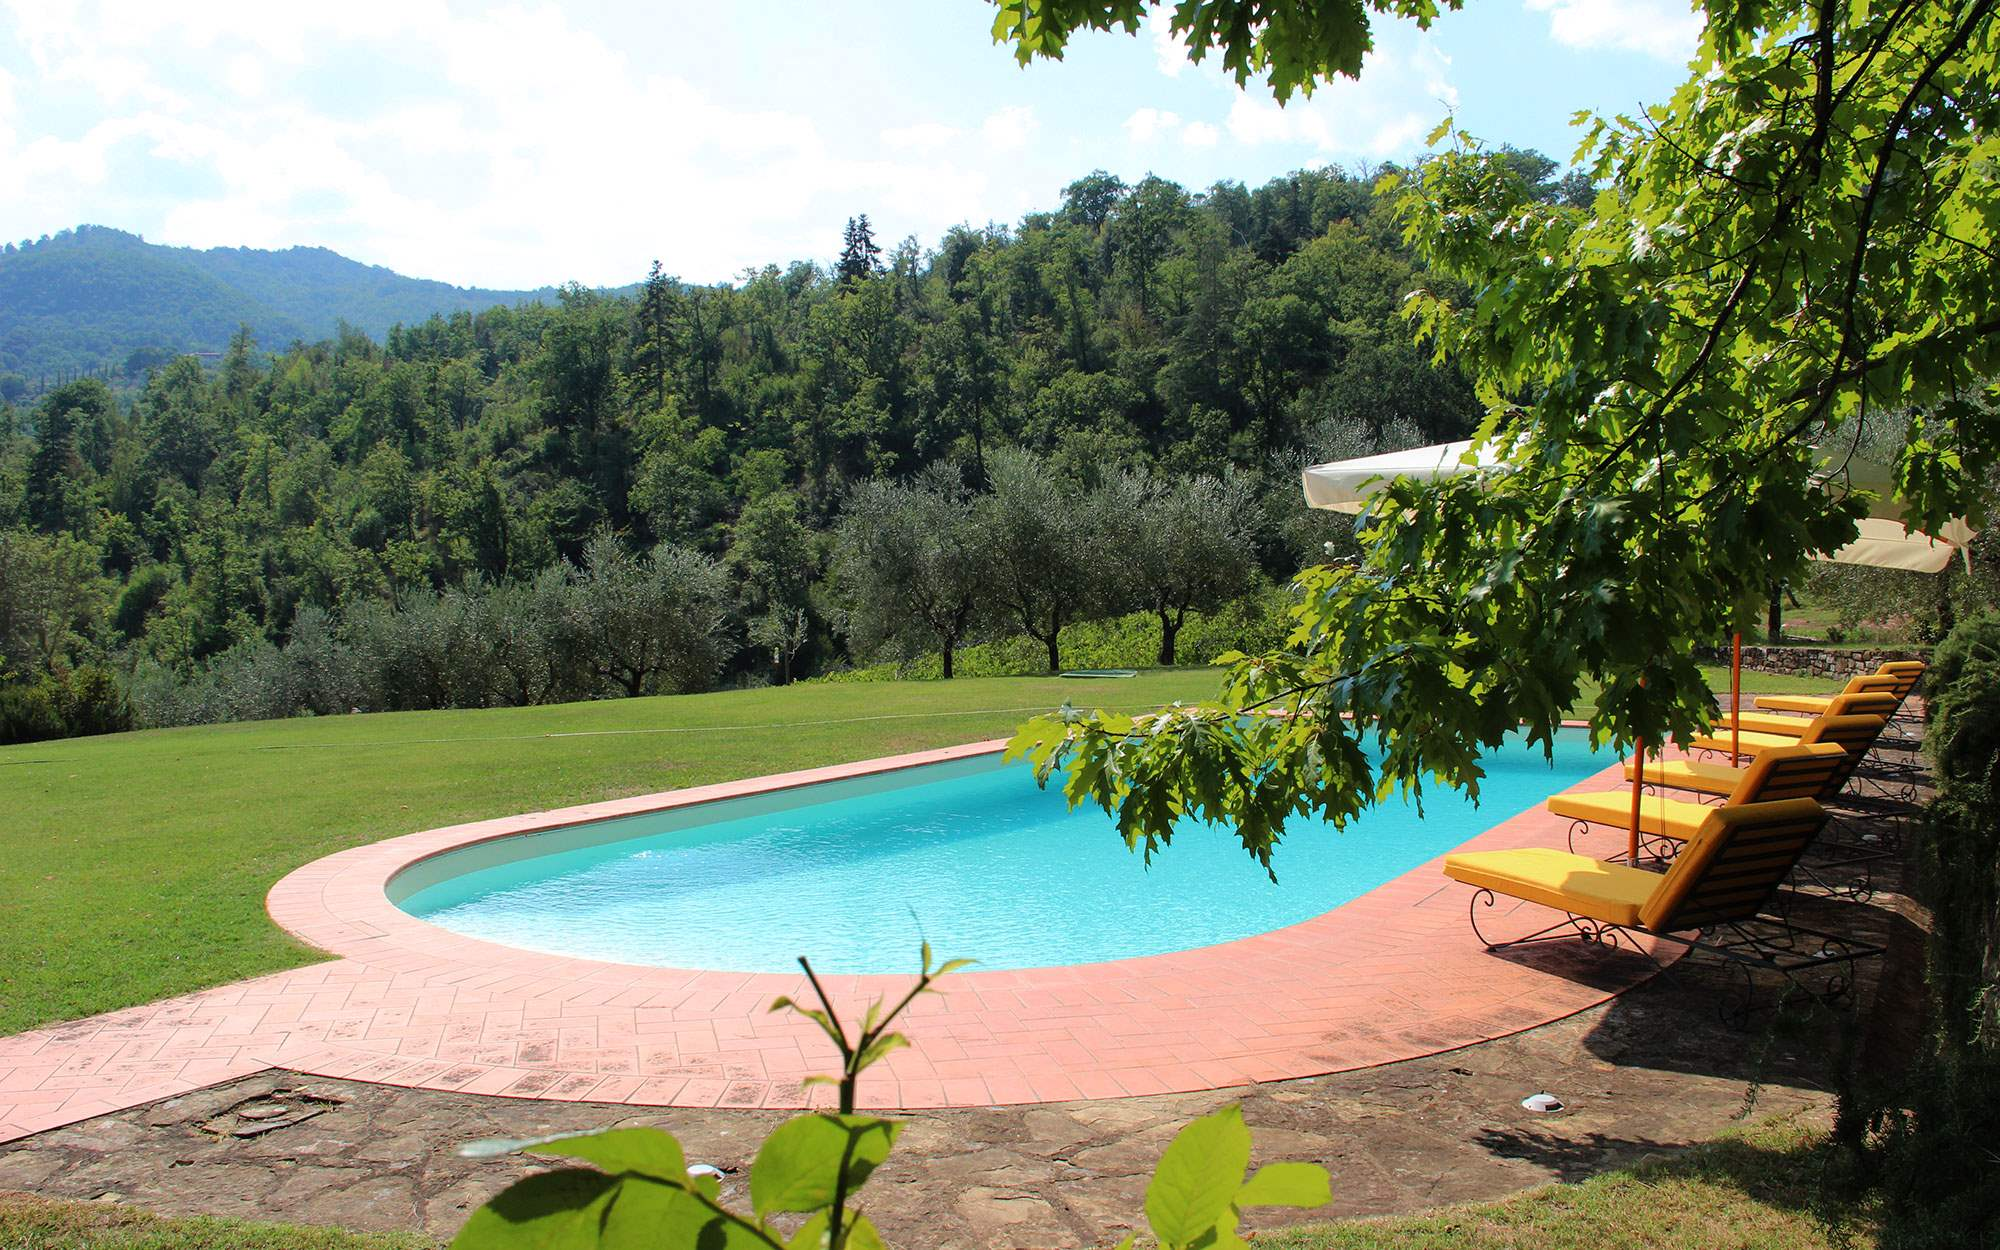 Villa Felicita, Main house and apartment, 10 persons rate, 5 bedroom villa in Chianti & Countryside, Tuscany Photo #4